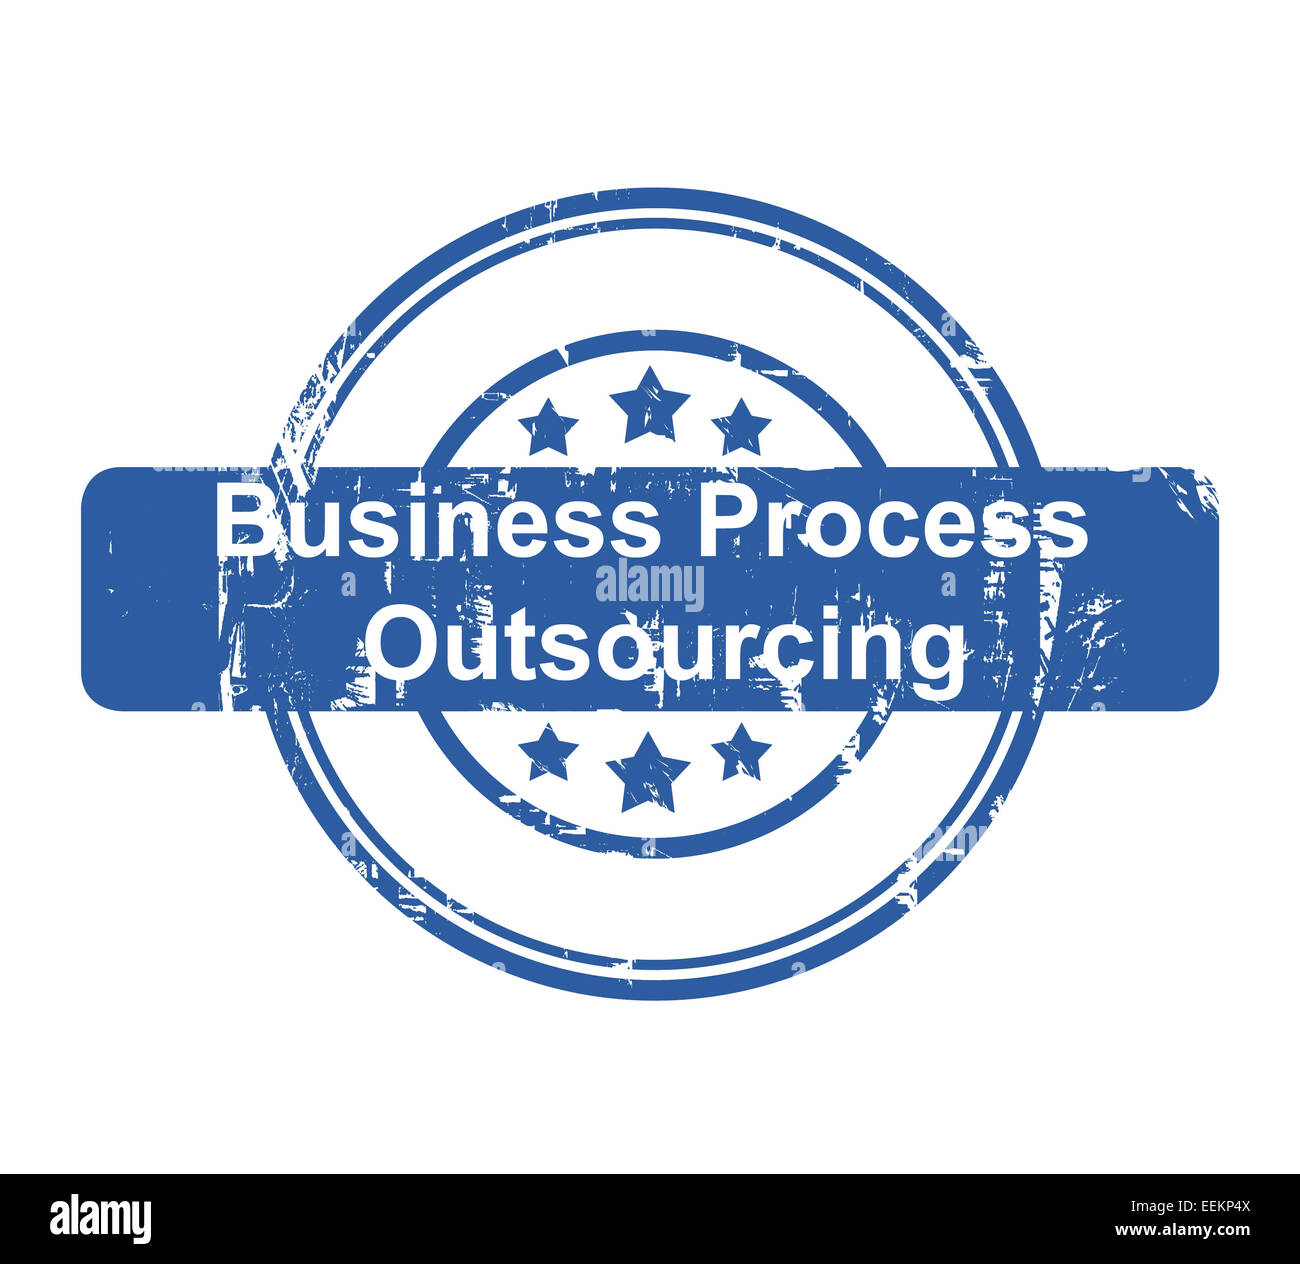 Business Process Outsourcing concept stamp with stars isolated on a white background. - Stock Image